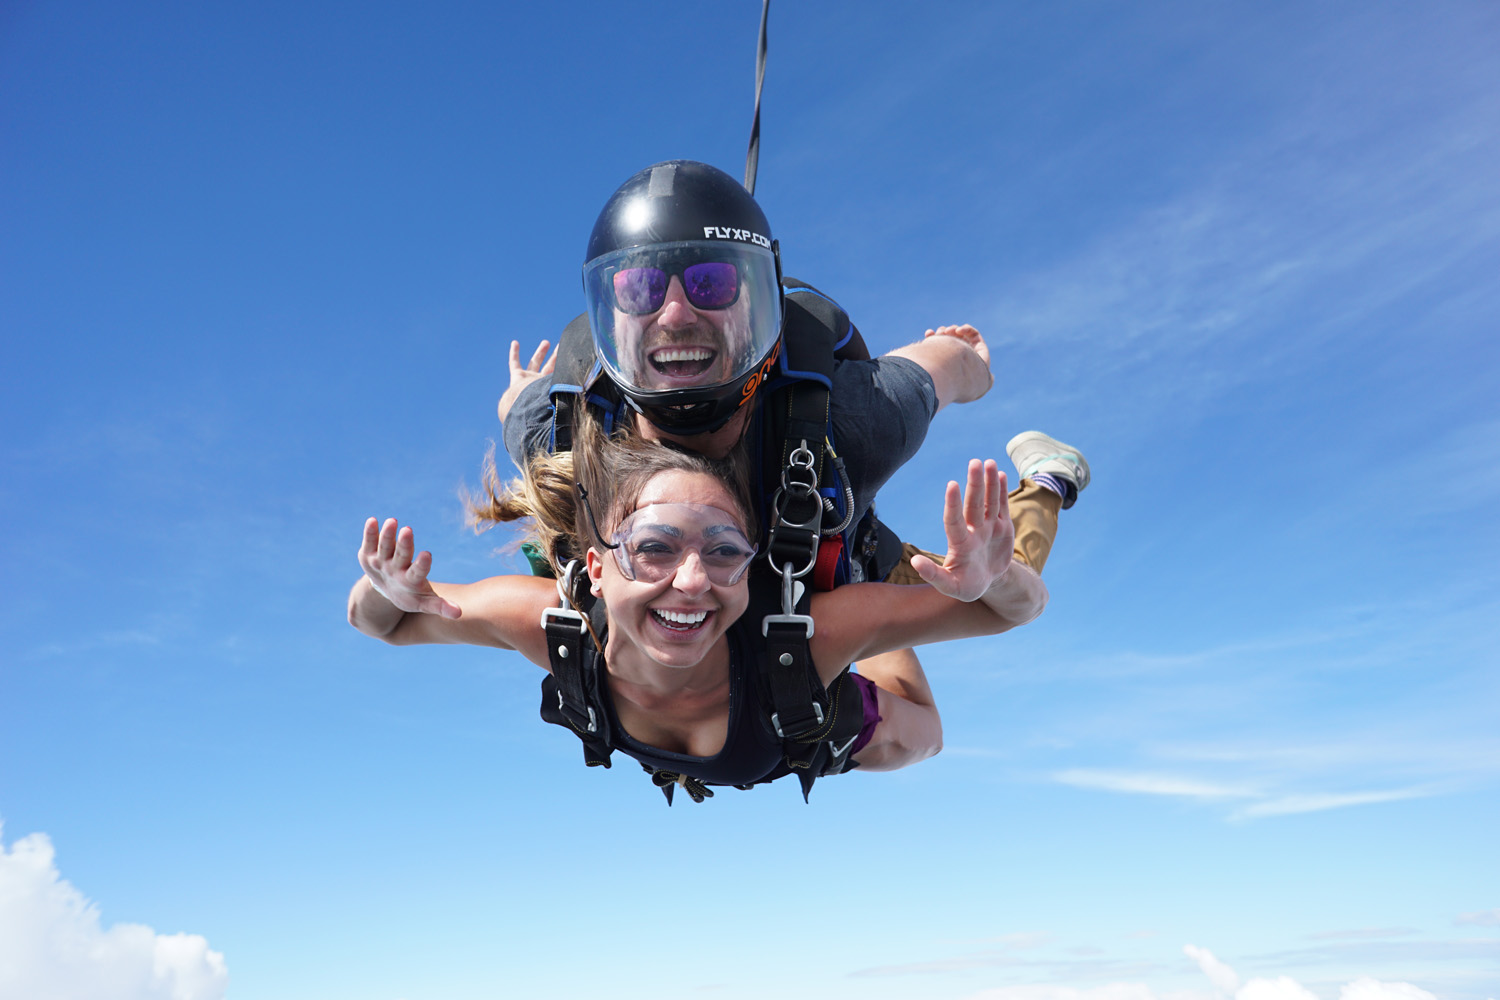 These are two people skydiving.